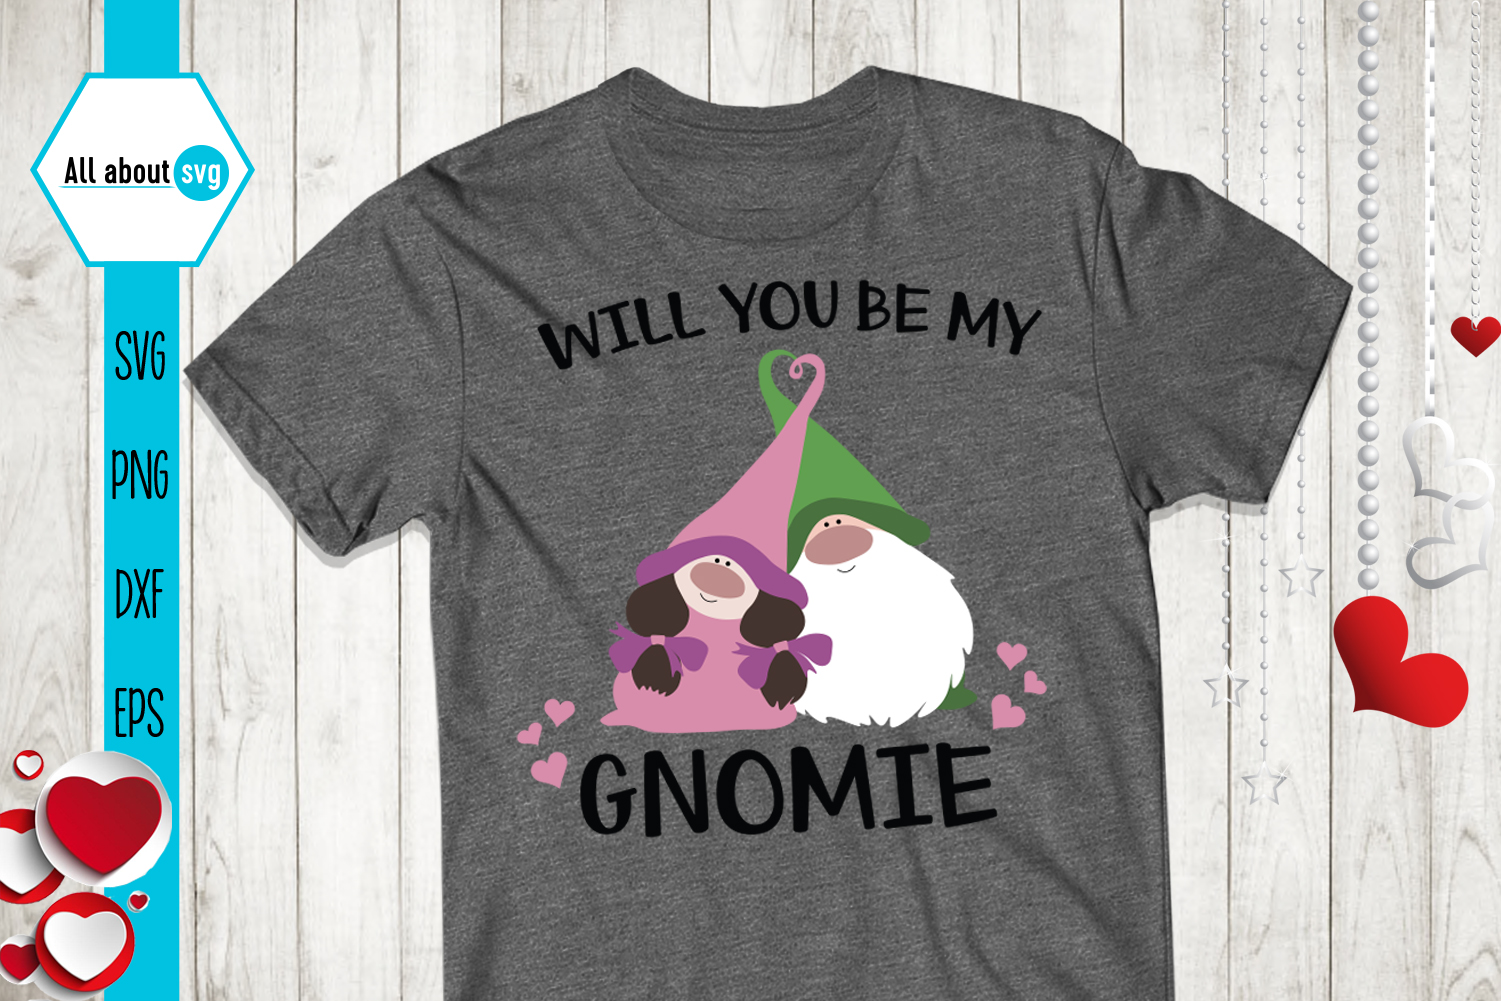 Will You Be My Gnomie Svg, Valentine's Gnomies Svg example image 3